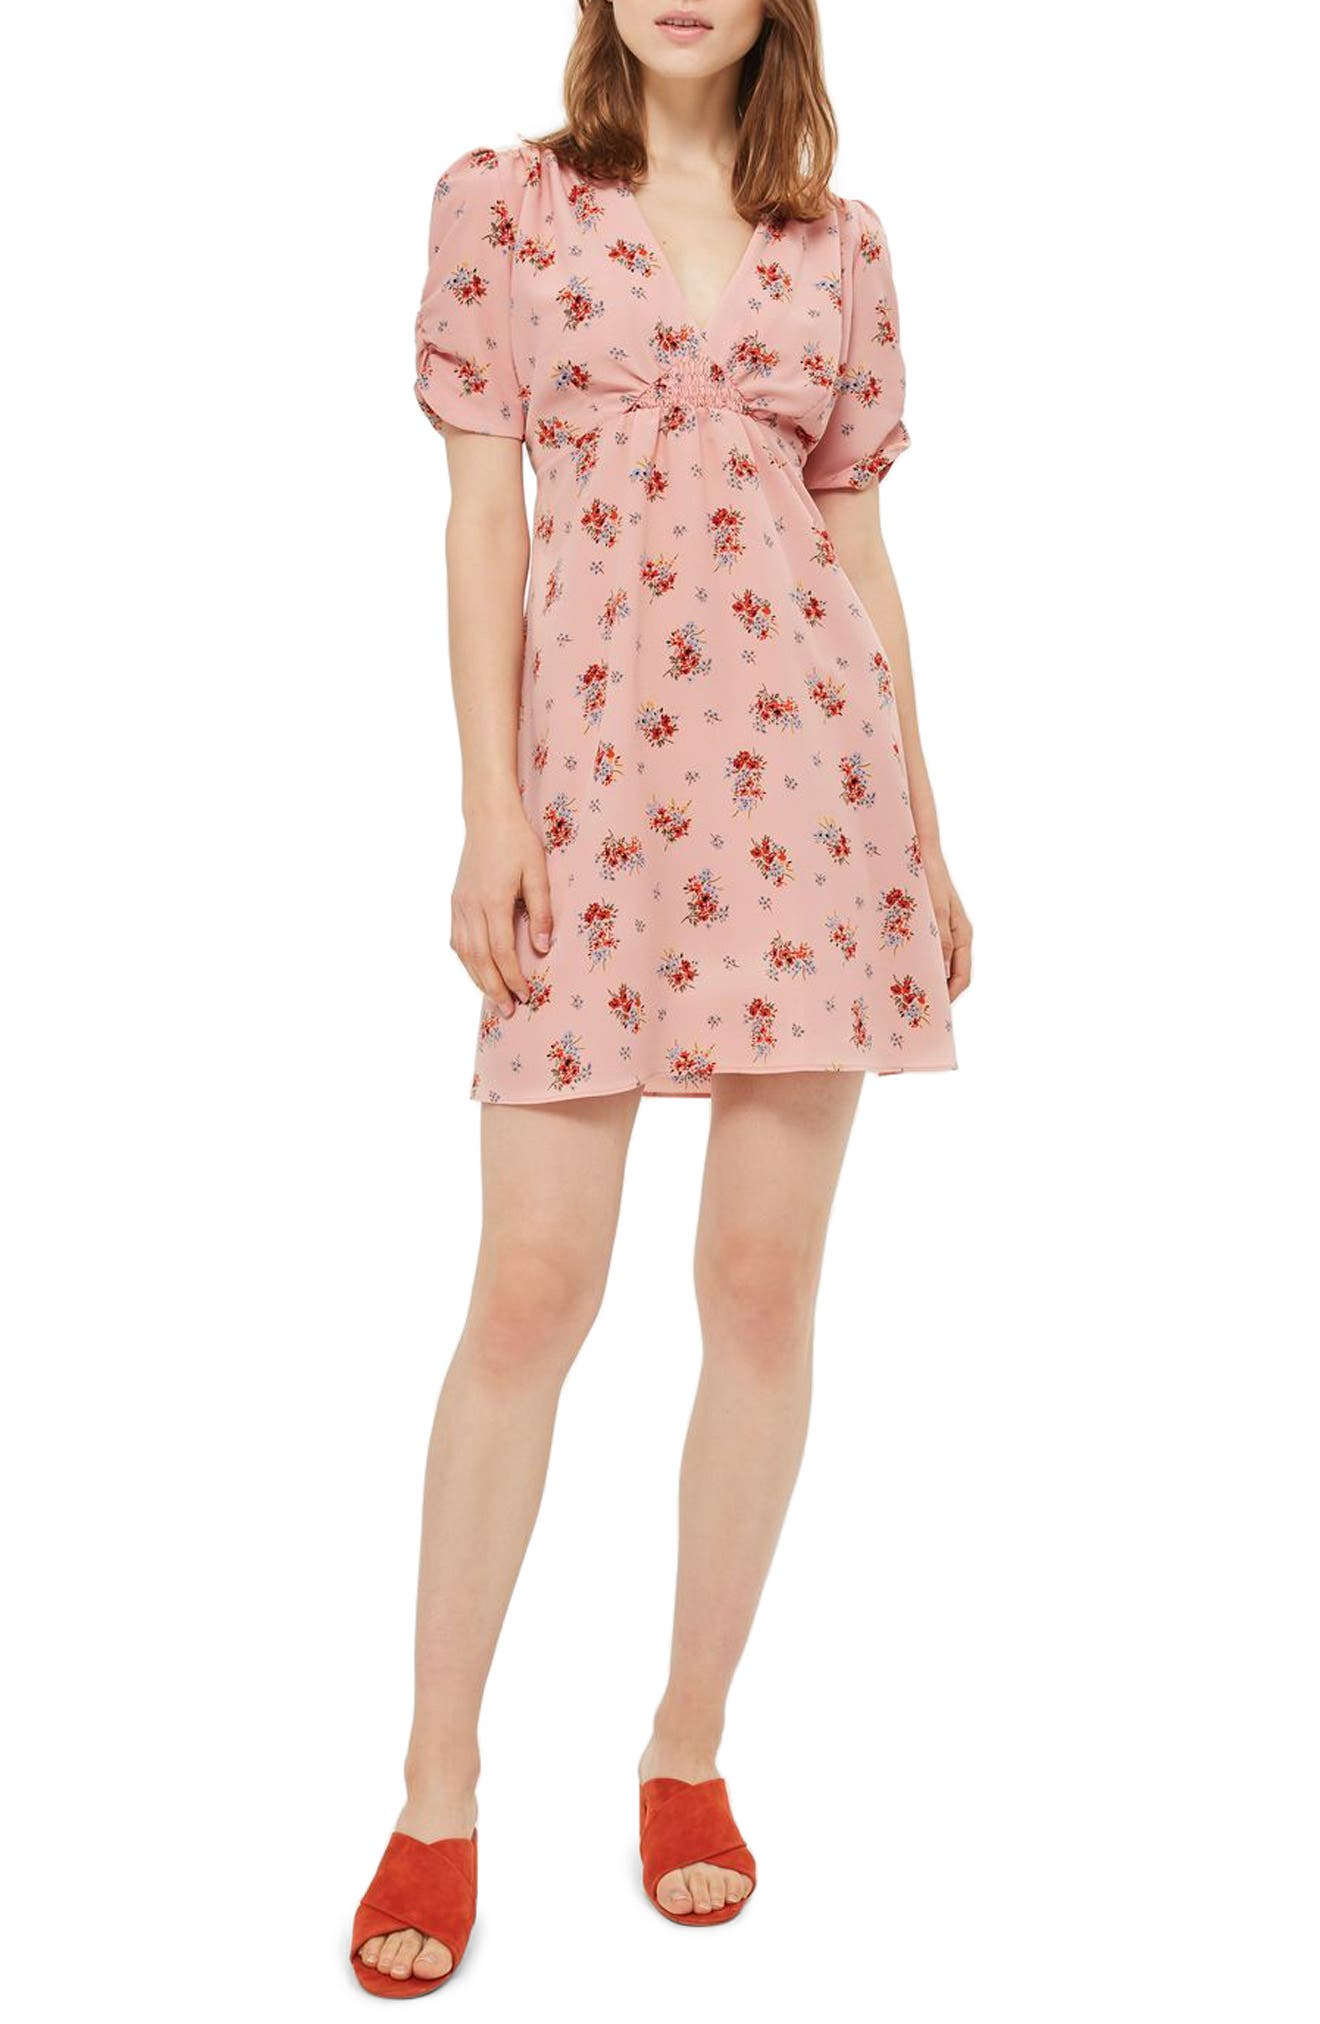 Topshop Kate Floral Tea Dress